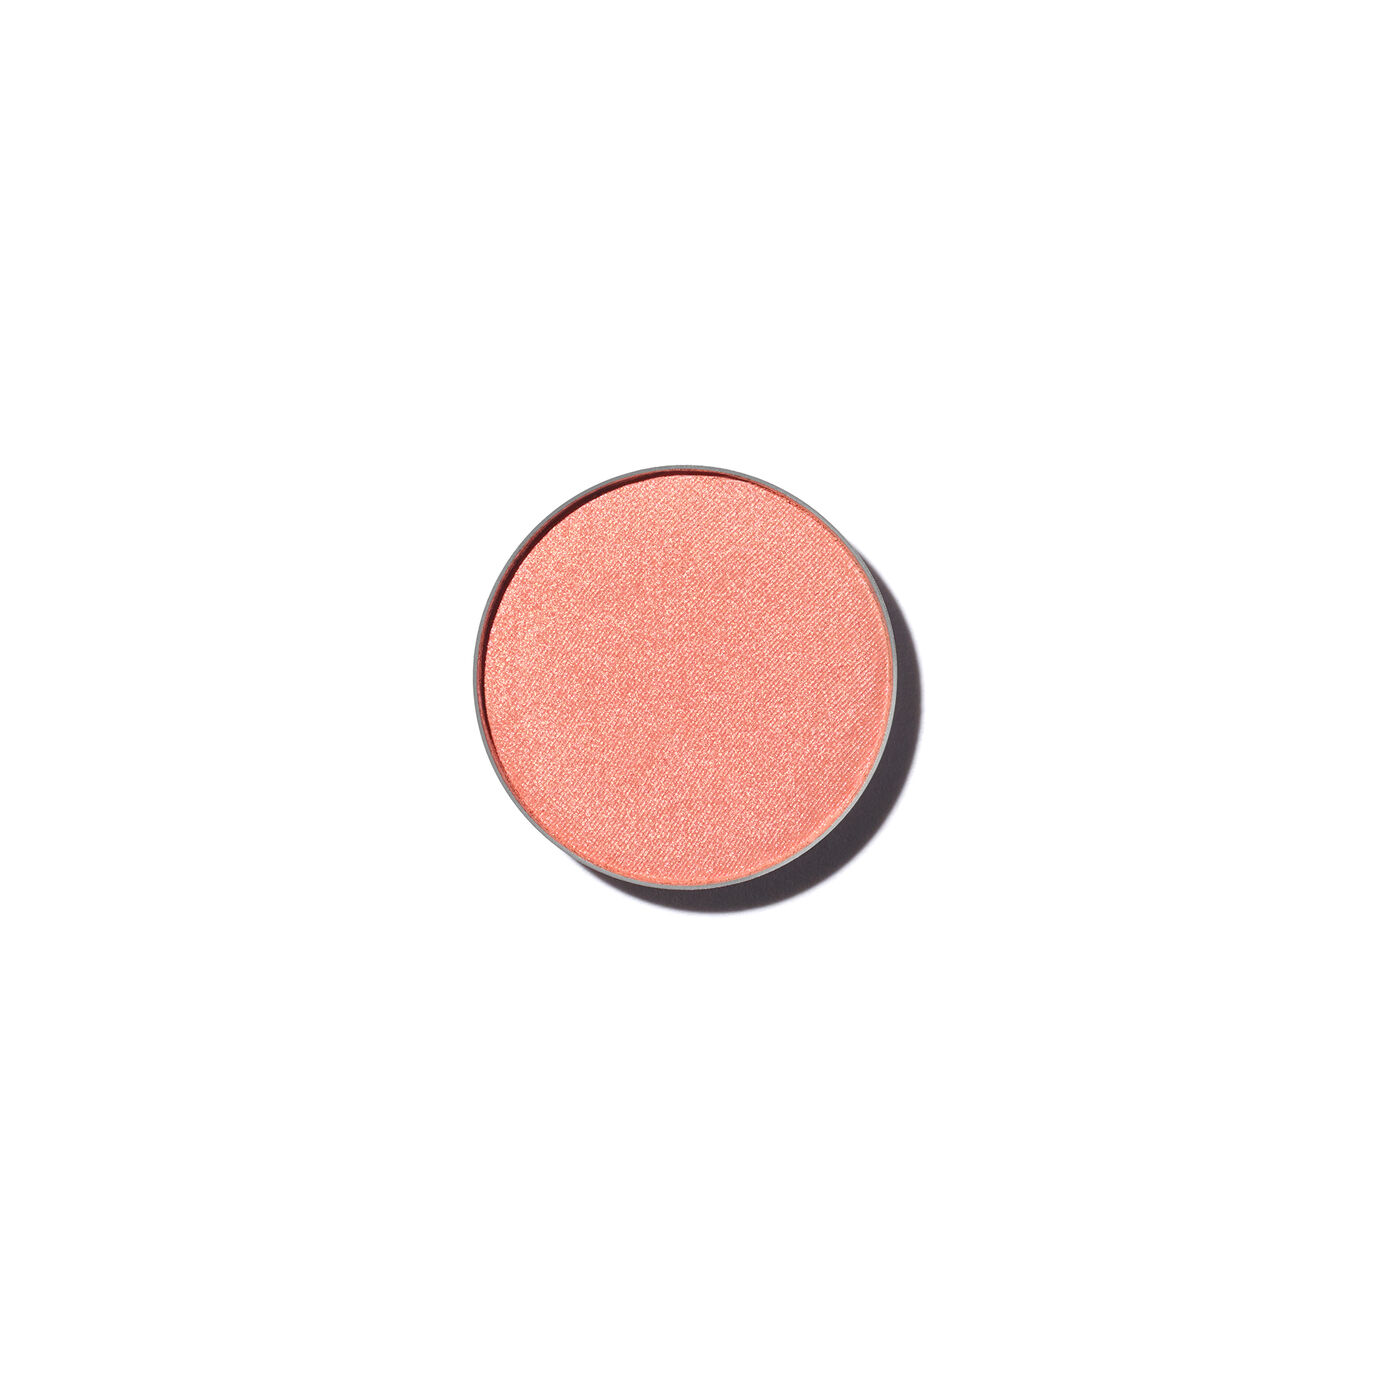 Eyeshadow Singles - Blushing